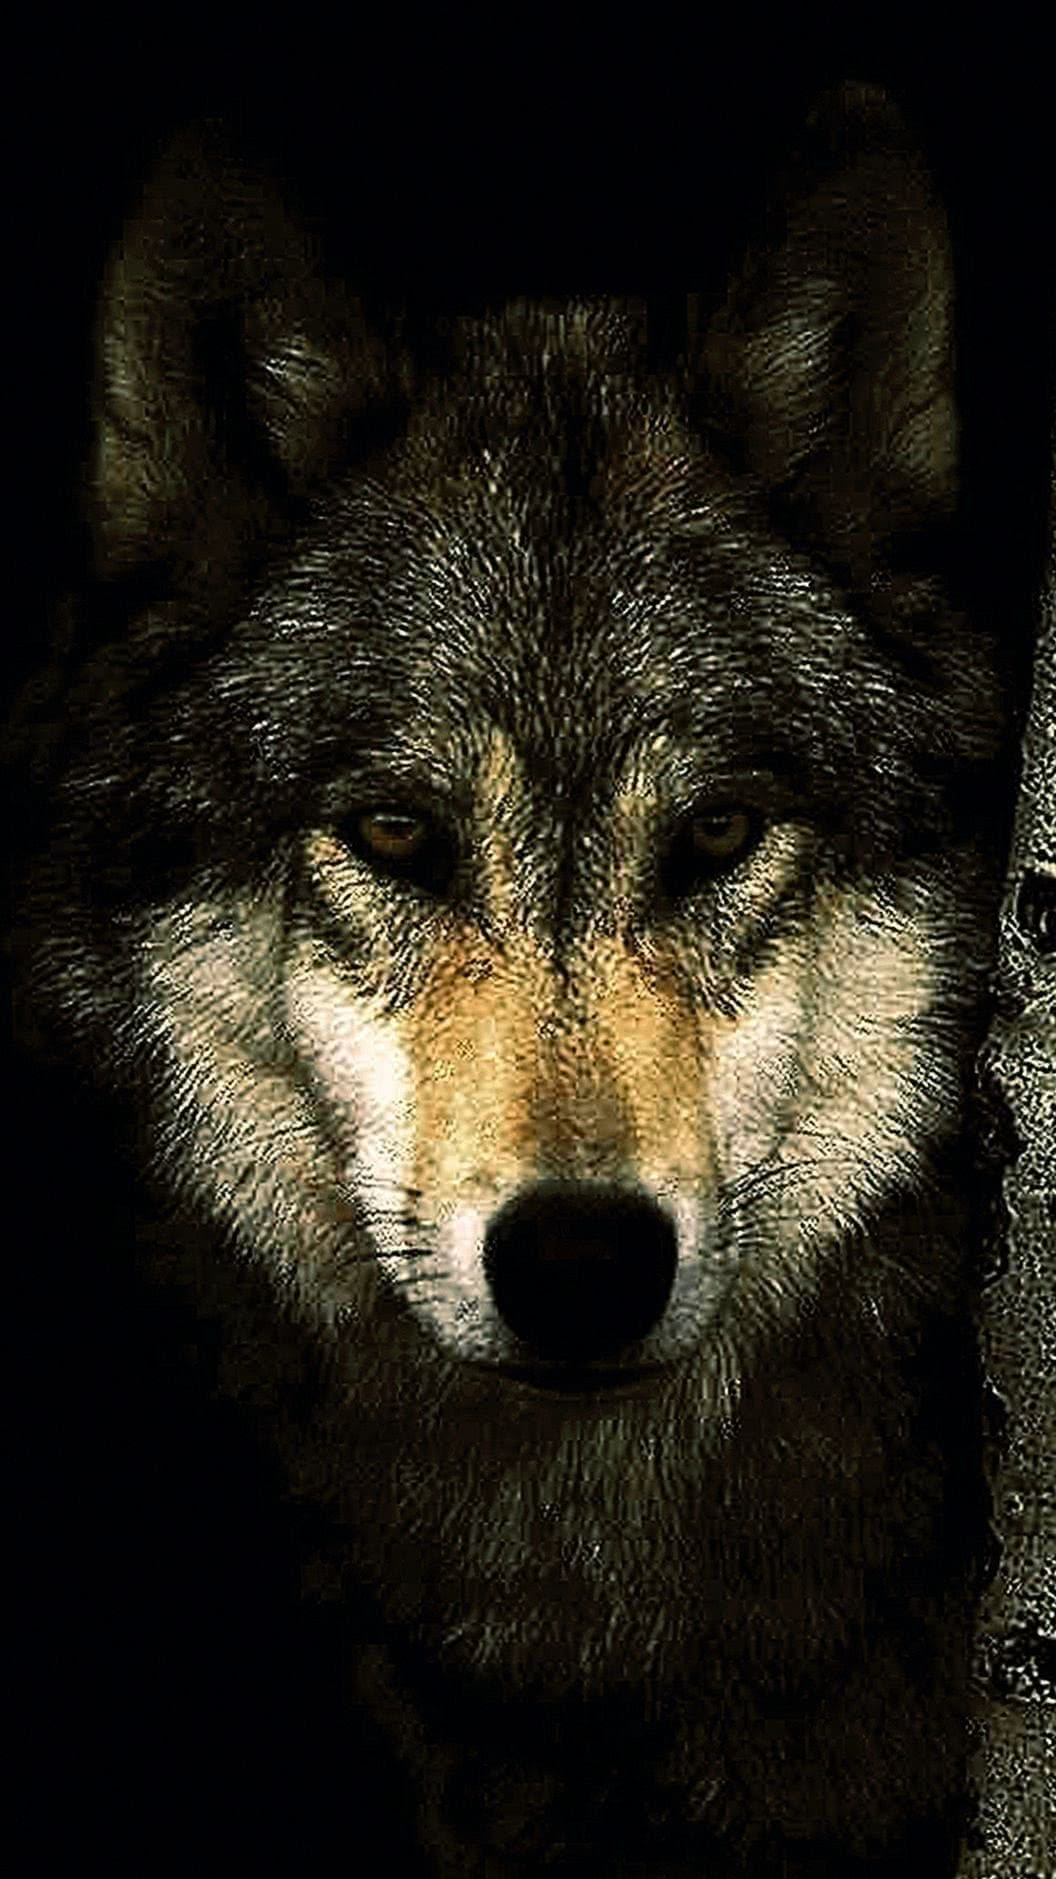 HD Wolf Wallpapers For Mobile